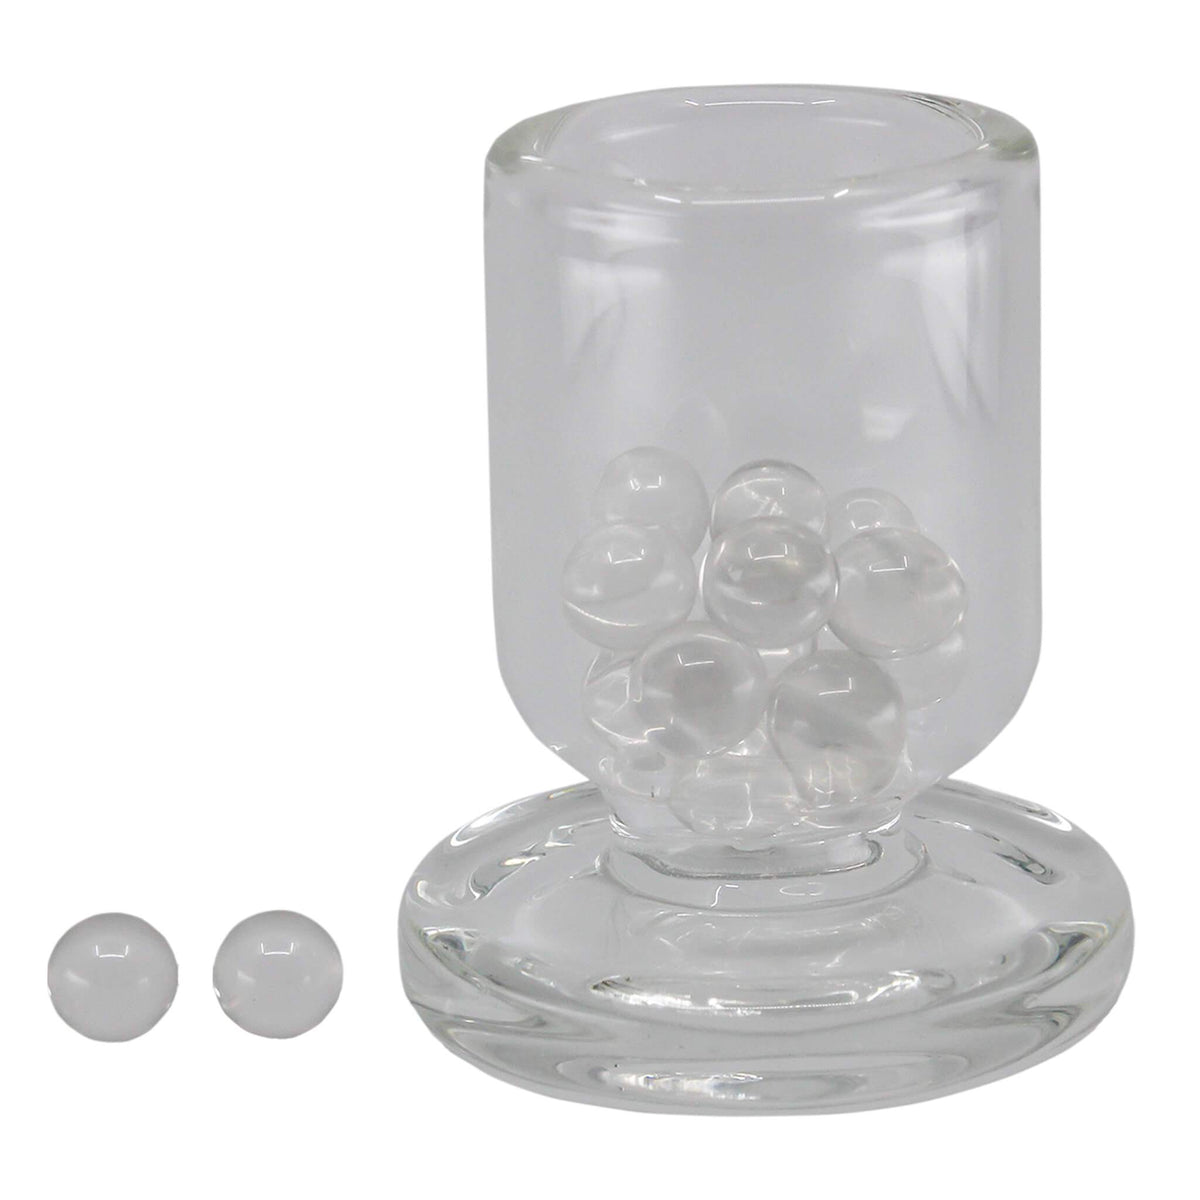 30mm Mini Enail Complete Dabbing Kit #5_Quartz Terp Pearls